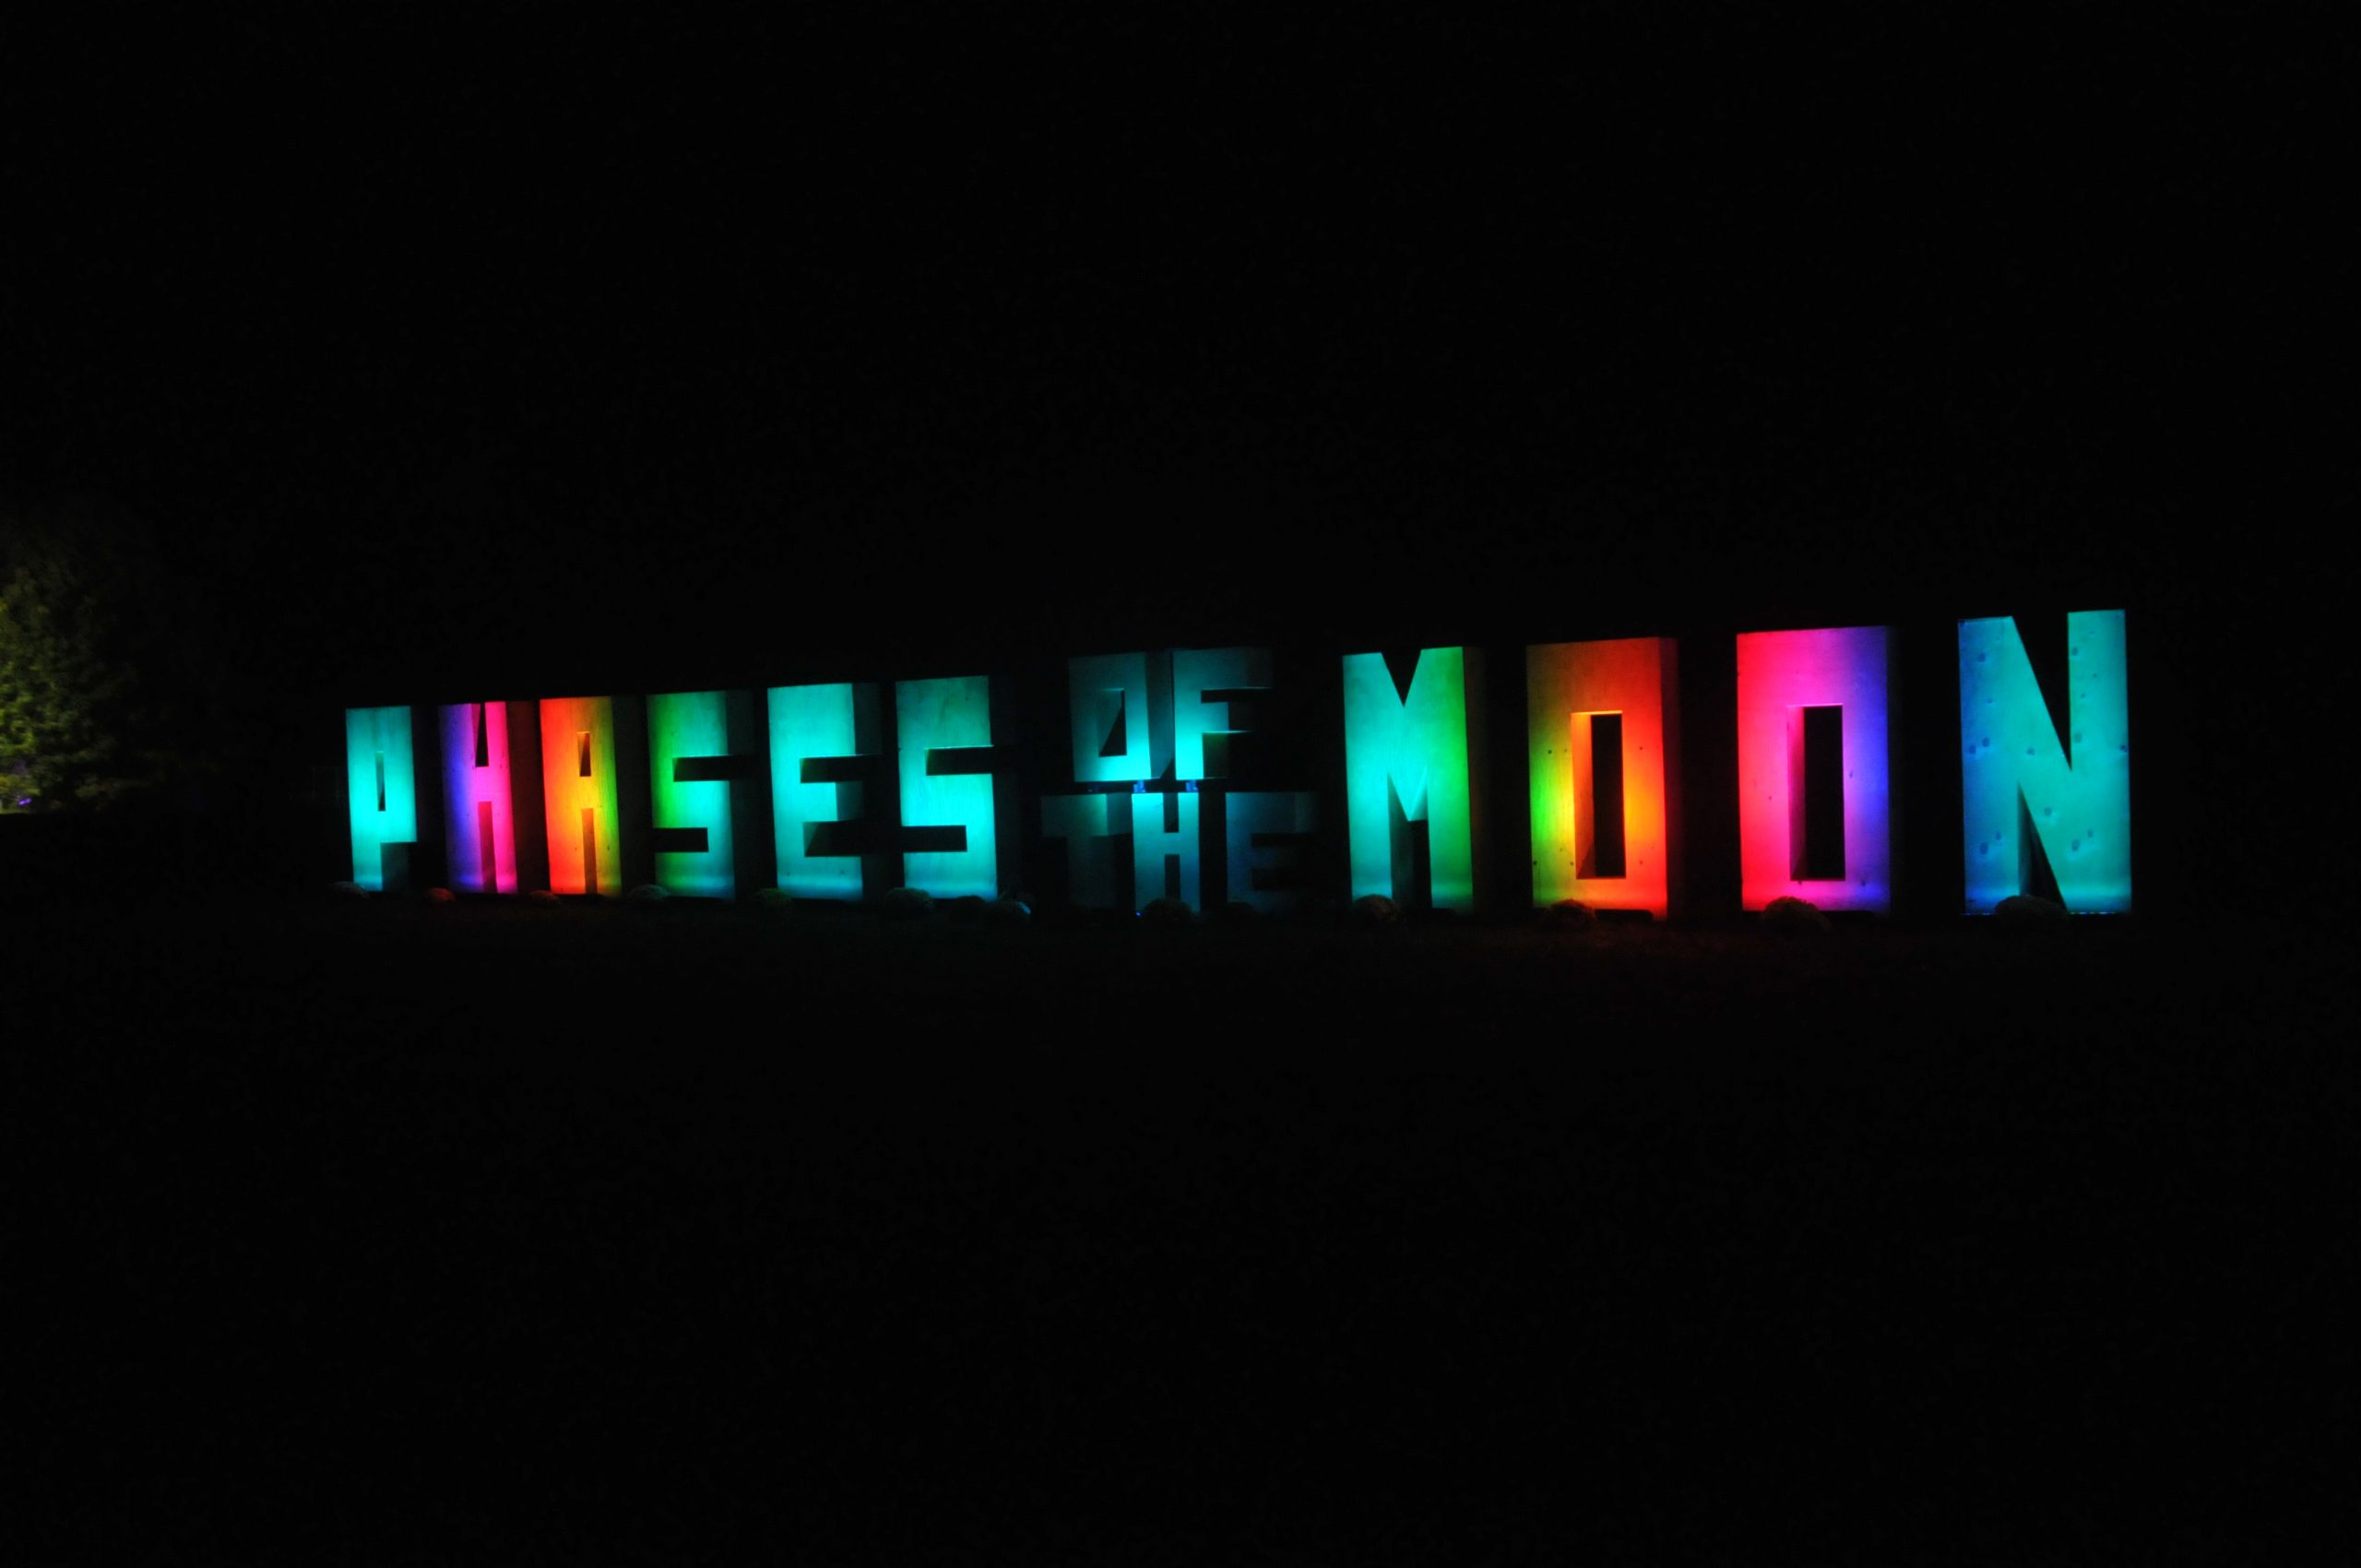 Phases of the Moon Festival 2014 – Review and Photos